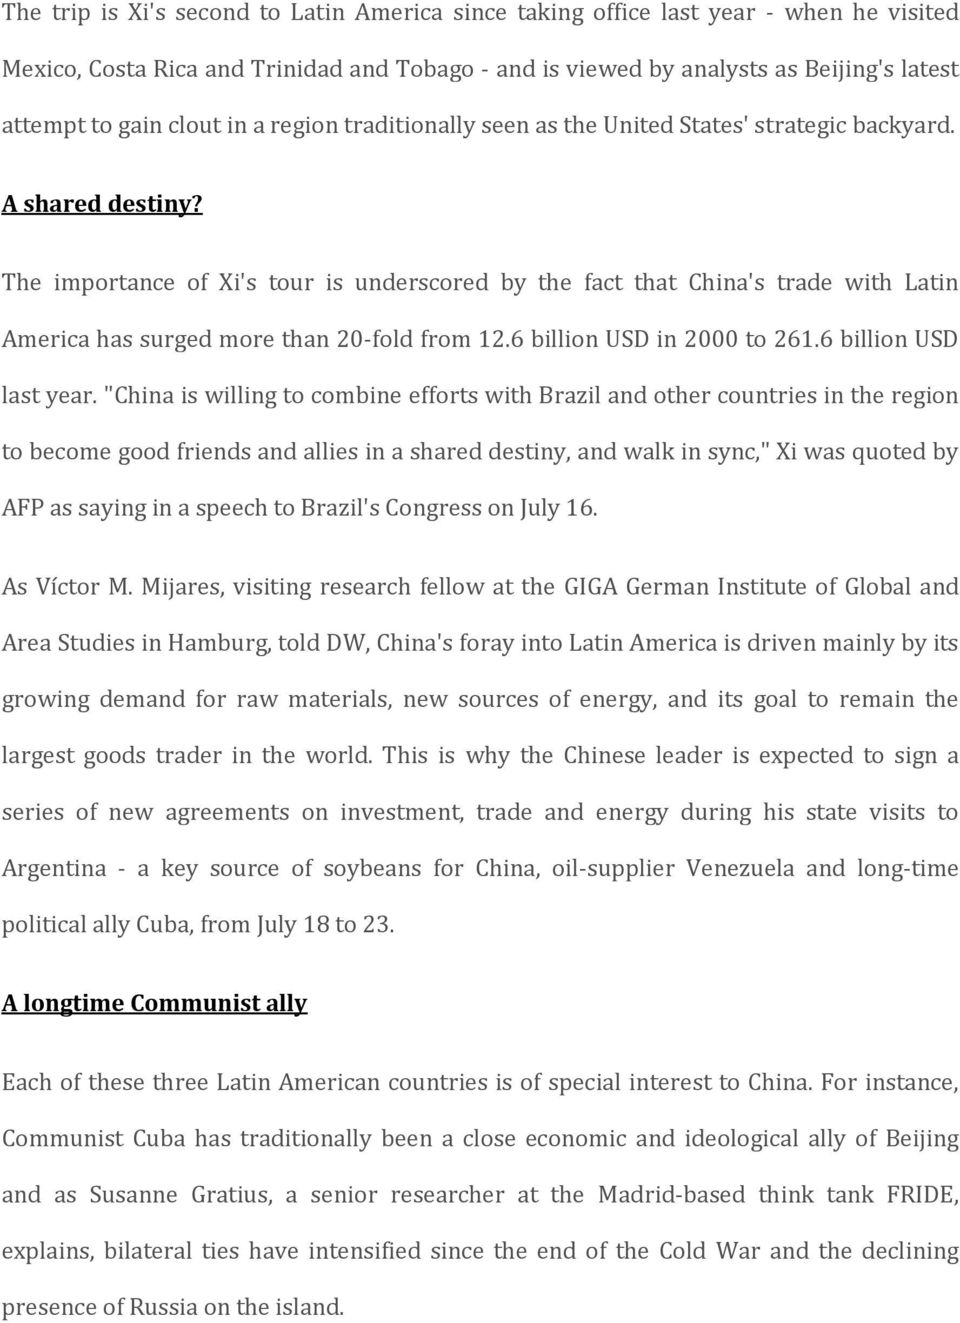 The importance of Xi's tour is underscored by the fact that China's trade with Latin America has surged more than 20-fold from 12.6 billion USD in 2000 to 261.6 billion USD last year.